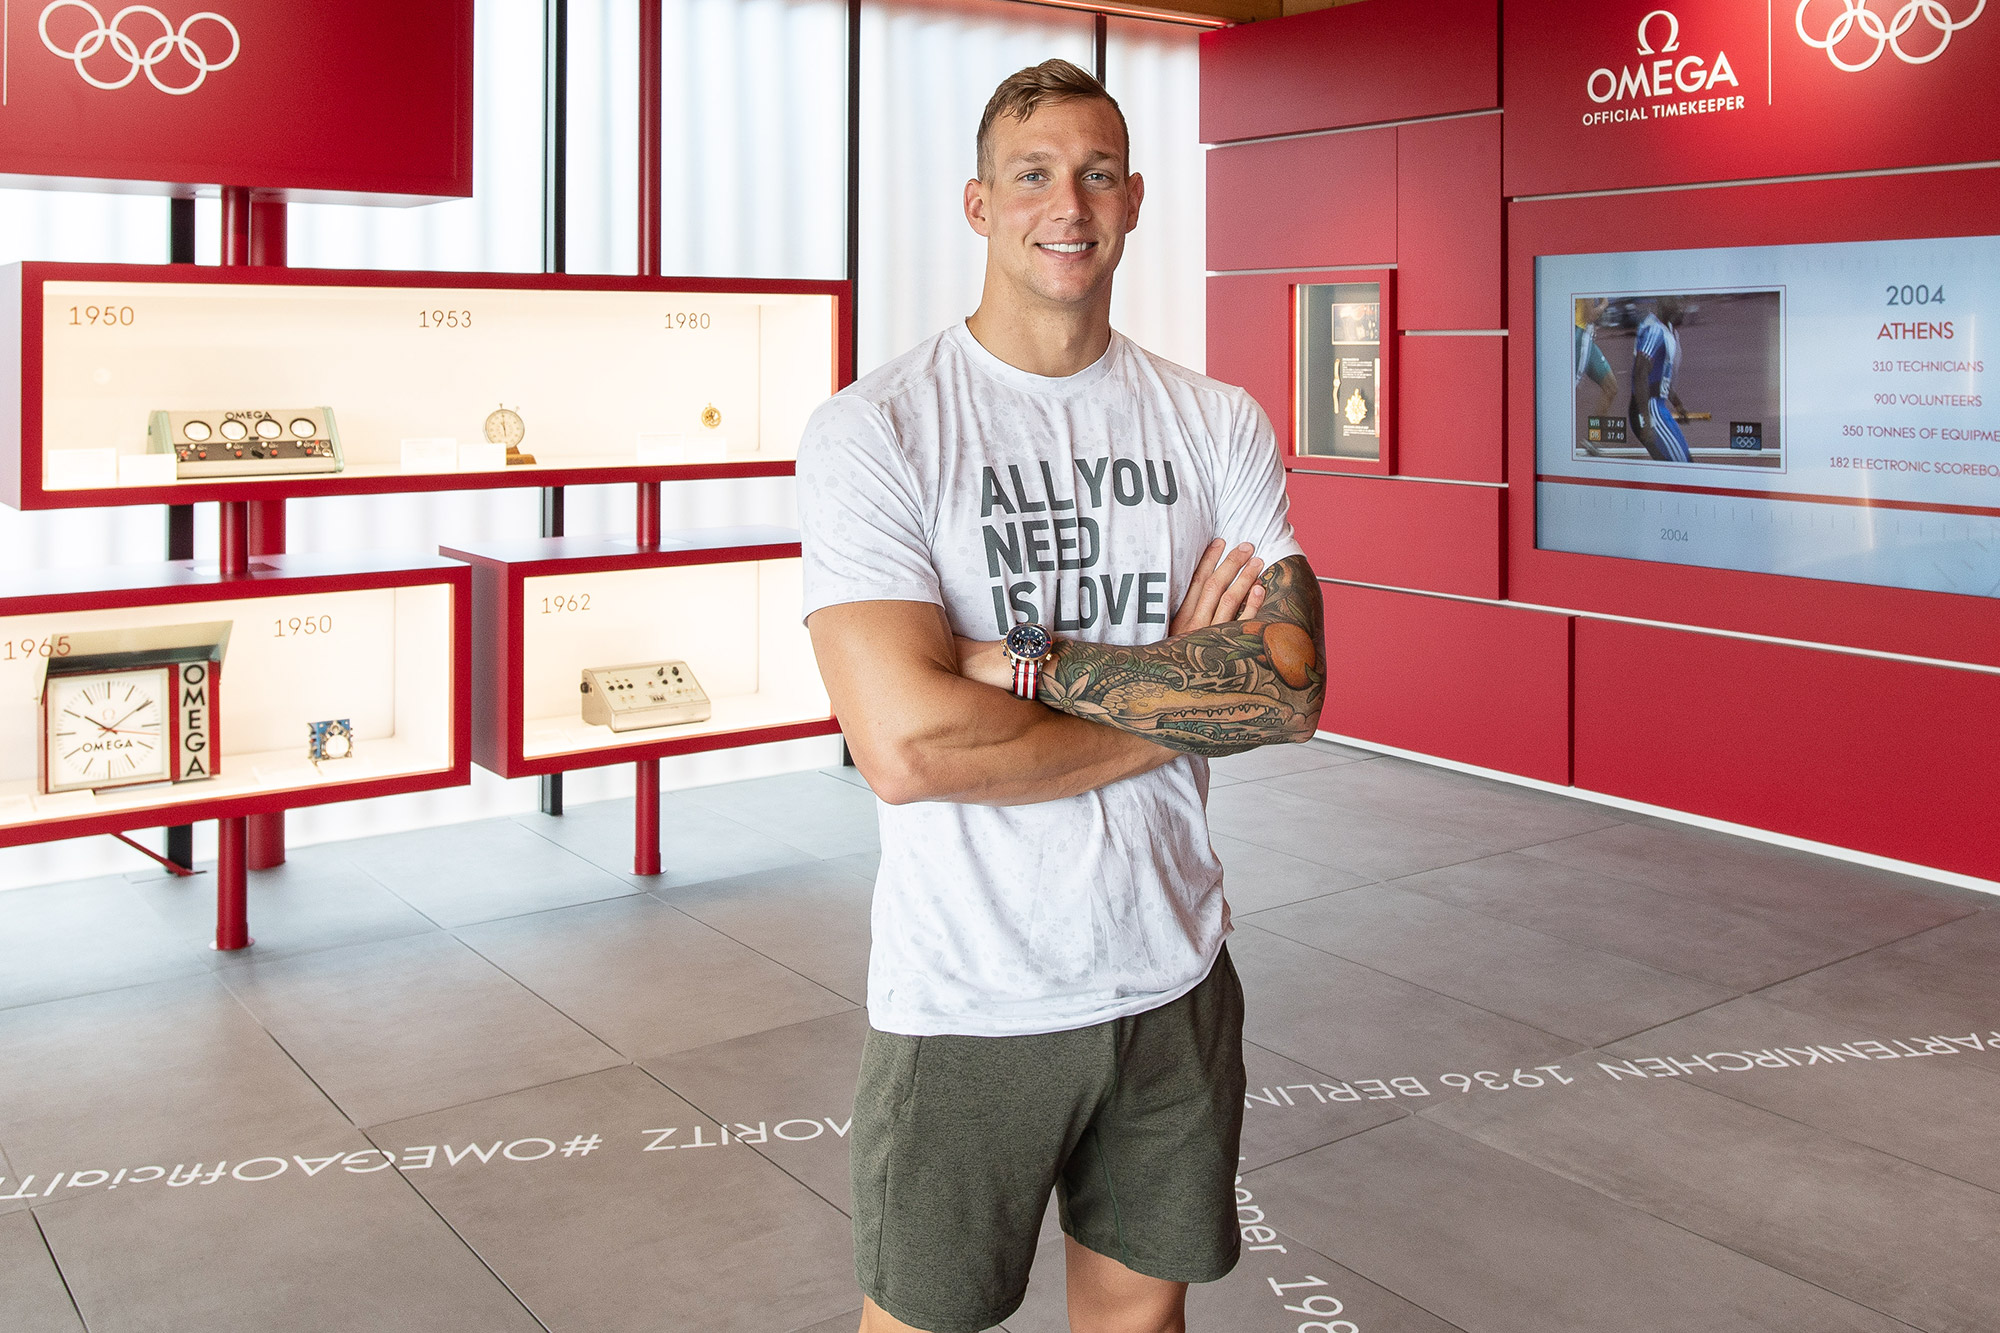 OMEGA Ambassador Caeleb Dressel, Star of Tokyo 2020 and recent addition to the OMEGA family Caeleb Dressel visits OMEGA Showcasing in Tokyo